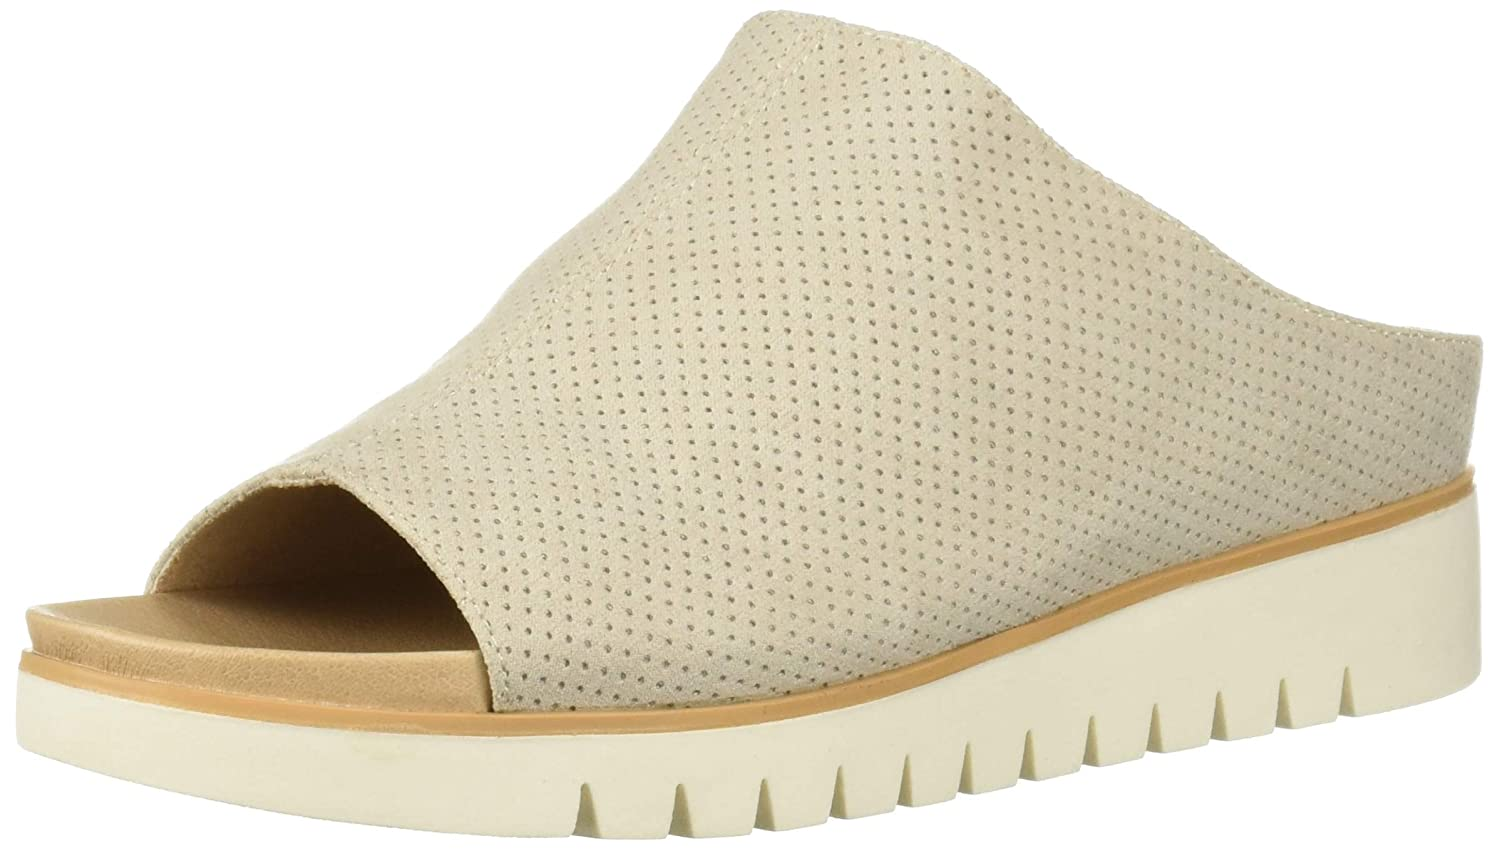 Buy Dr. Scholl's Shoes Women's Go for